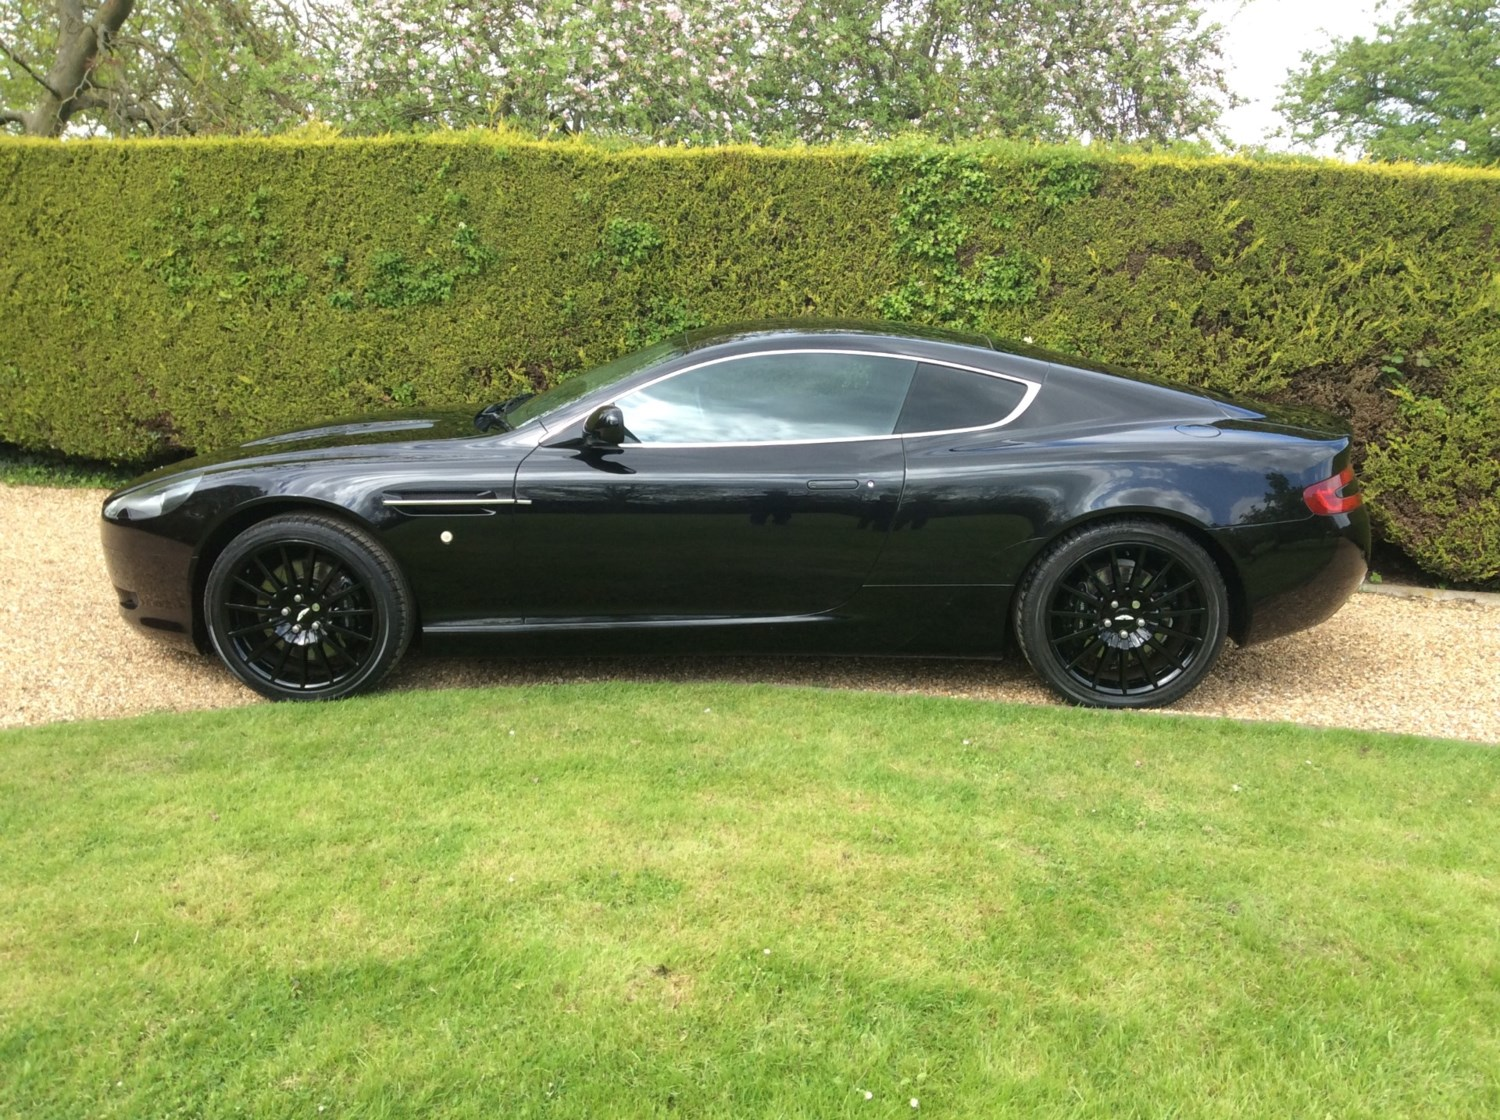 Used Aston Martin DB V Dr Touchtronic Auto Doors Coupe For - Used aston martin db9 for sale